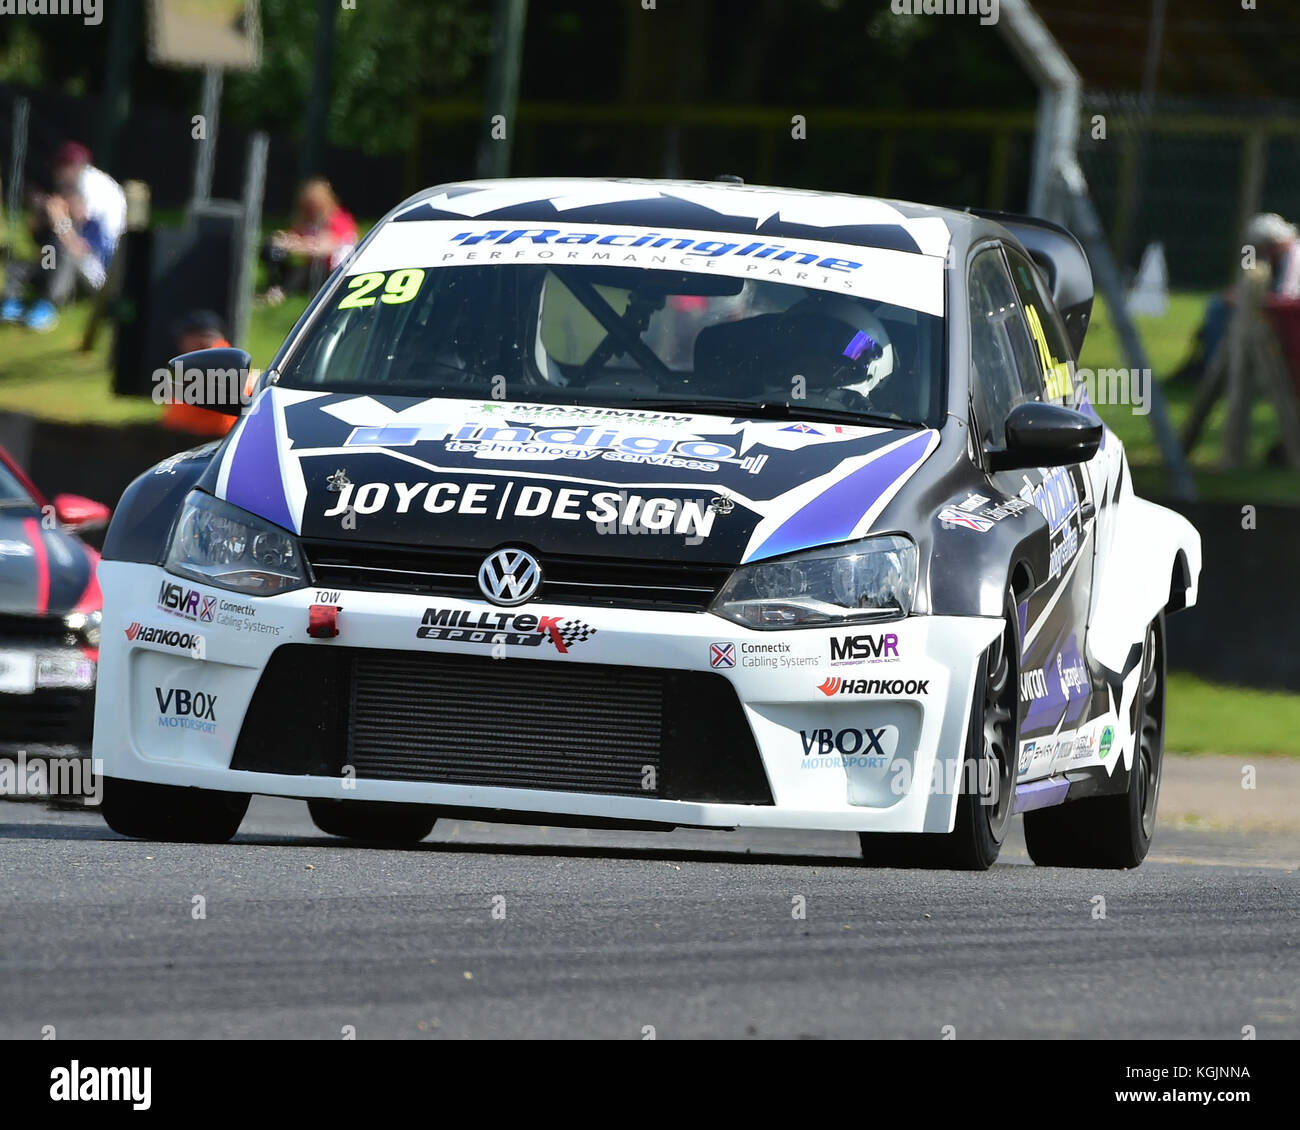 Vw Polo Cup Stock Photos Vw Polo Cup Stock Images Alamy